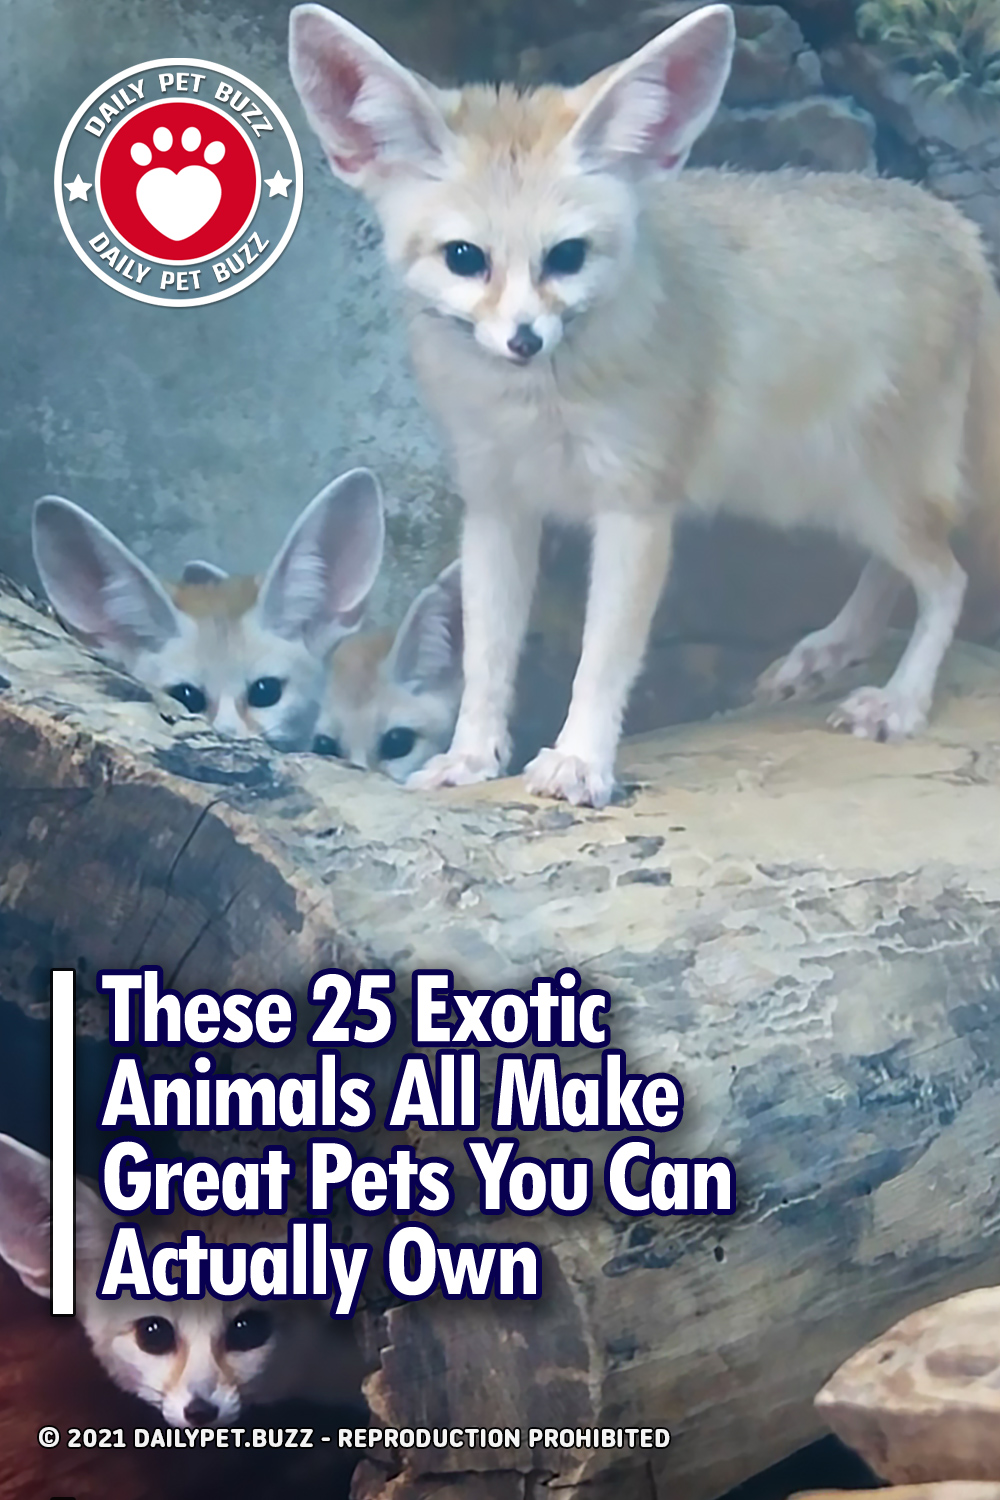 These 25 Exotic Animals All Make Great Pets You Can Actually Own